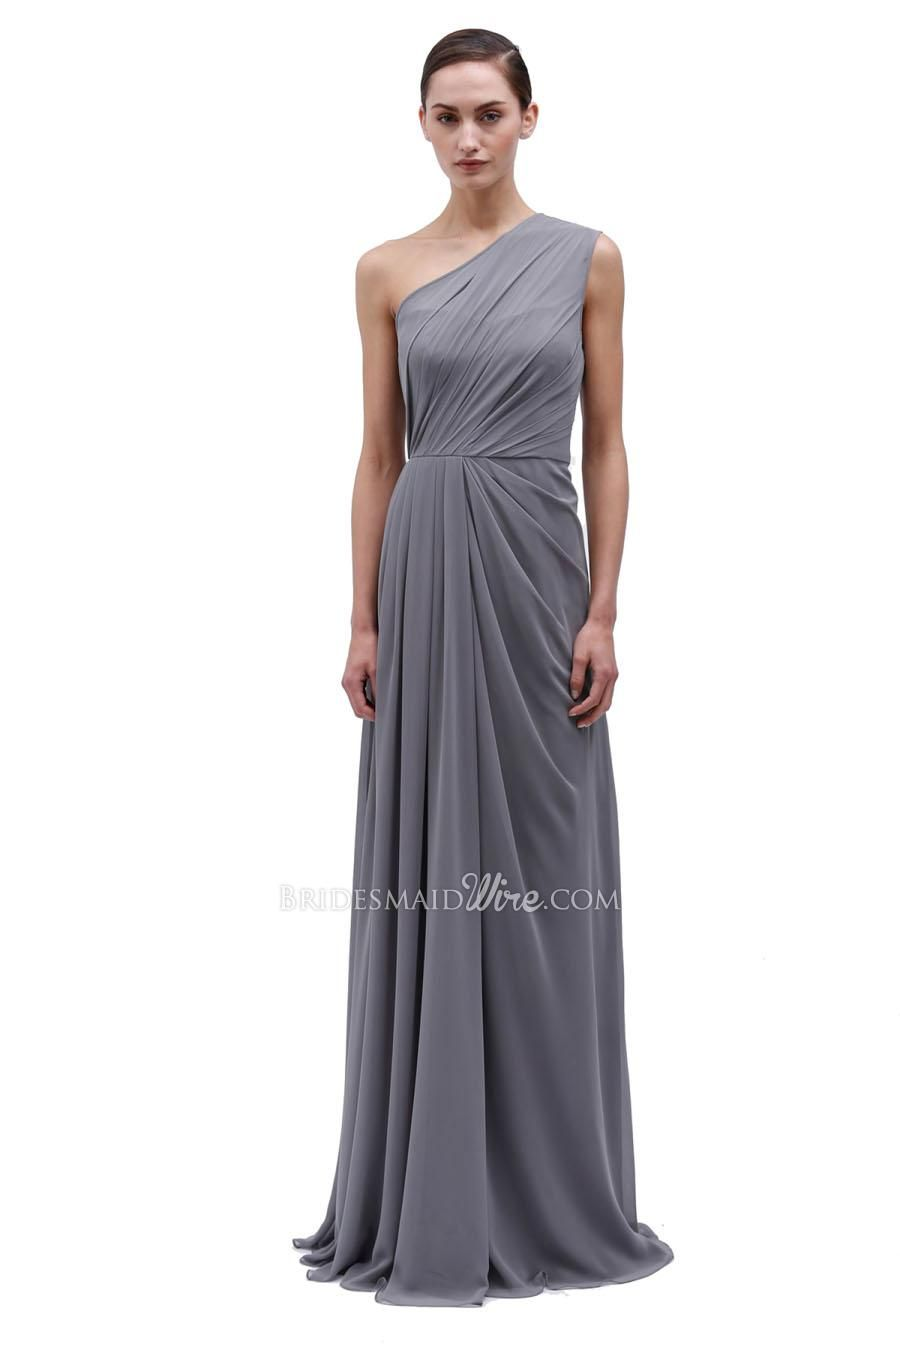 grey bridesmaid dresses with sleeves | Gommap Blog